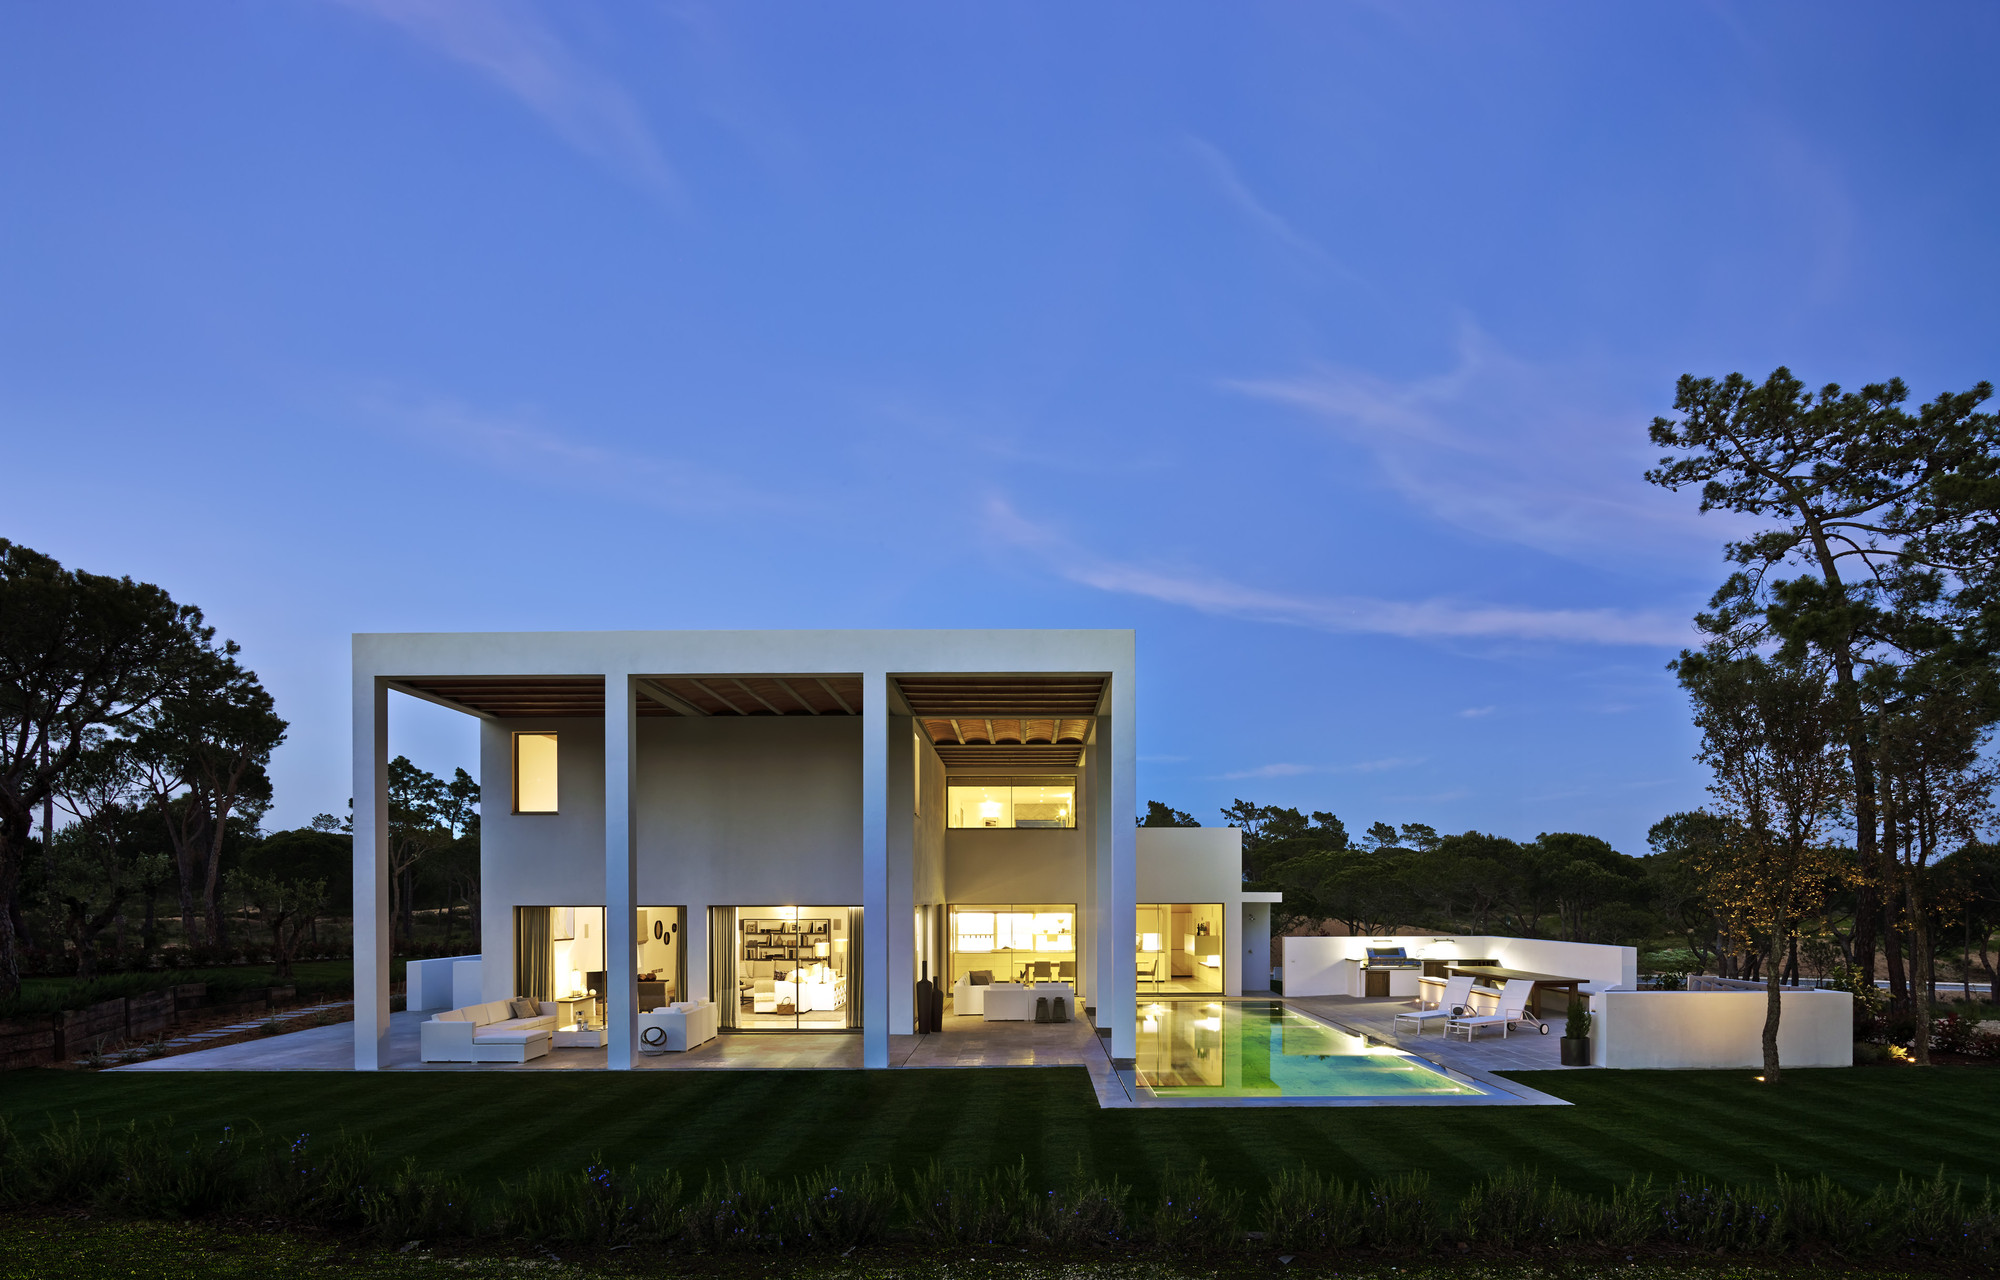 San Lorenzo House / de Blacam and Meagher Architects, Courtesy of Quinta do Lago